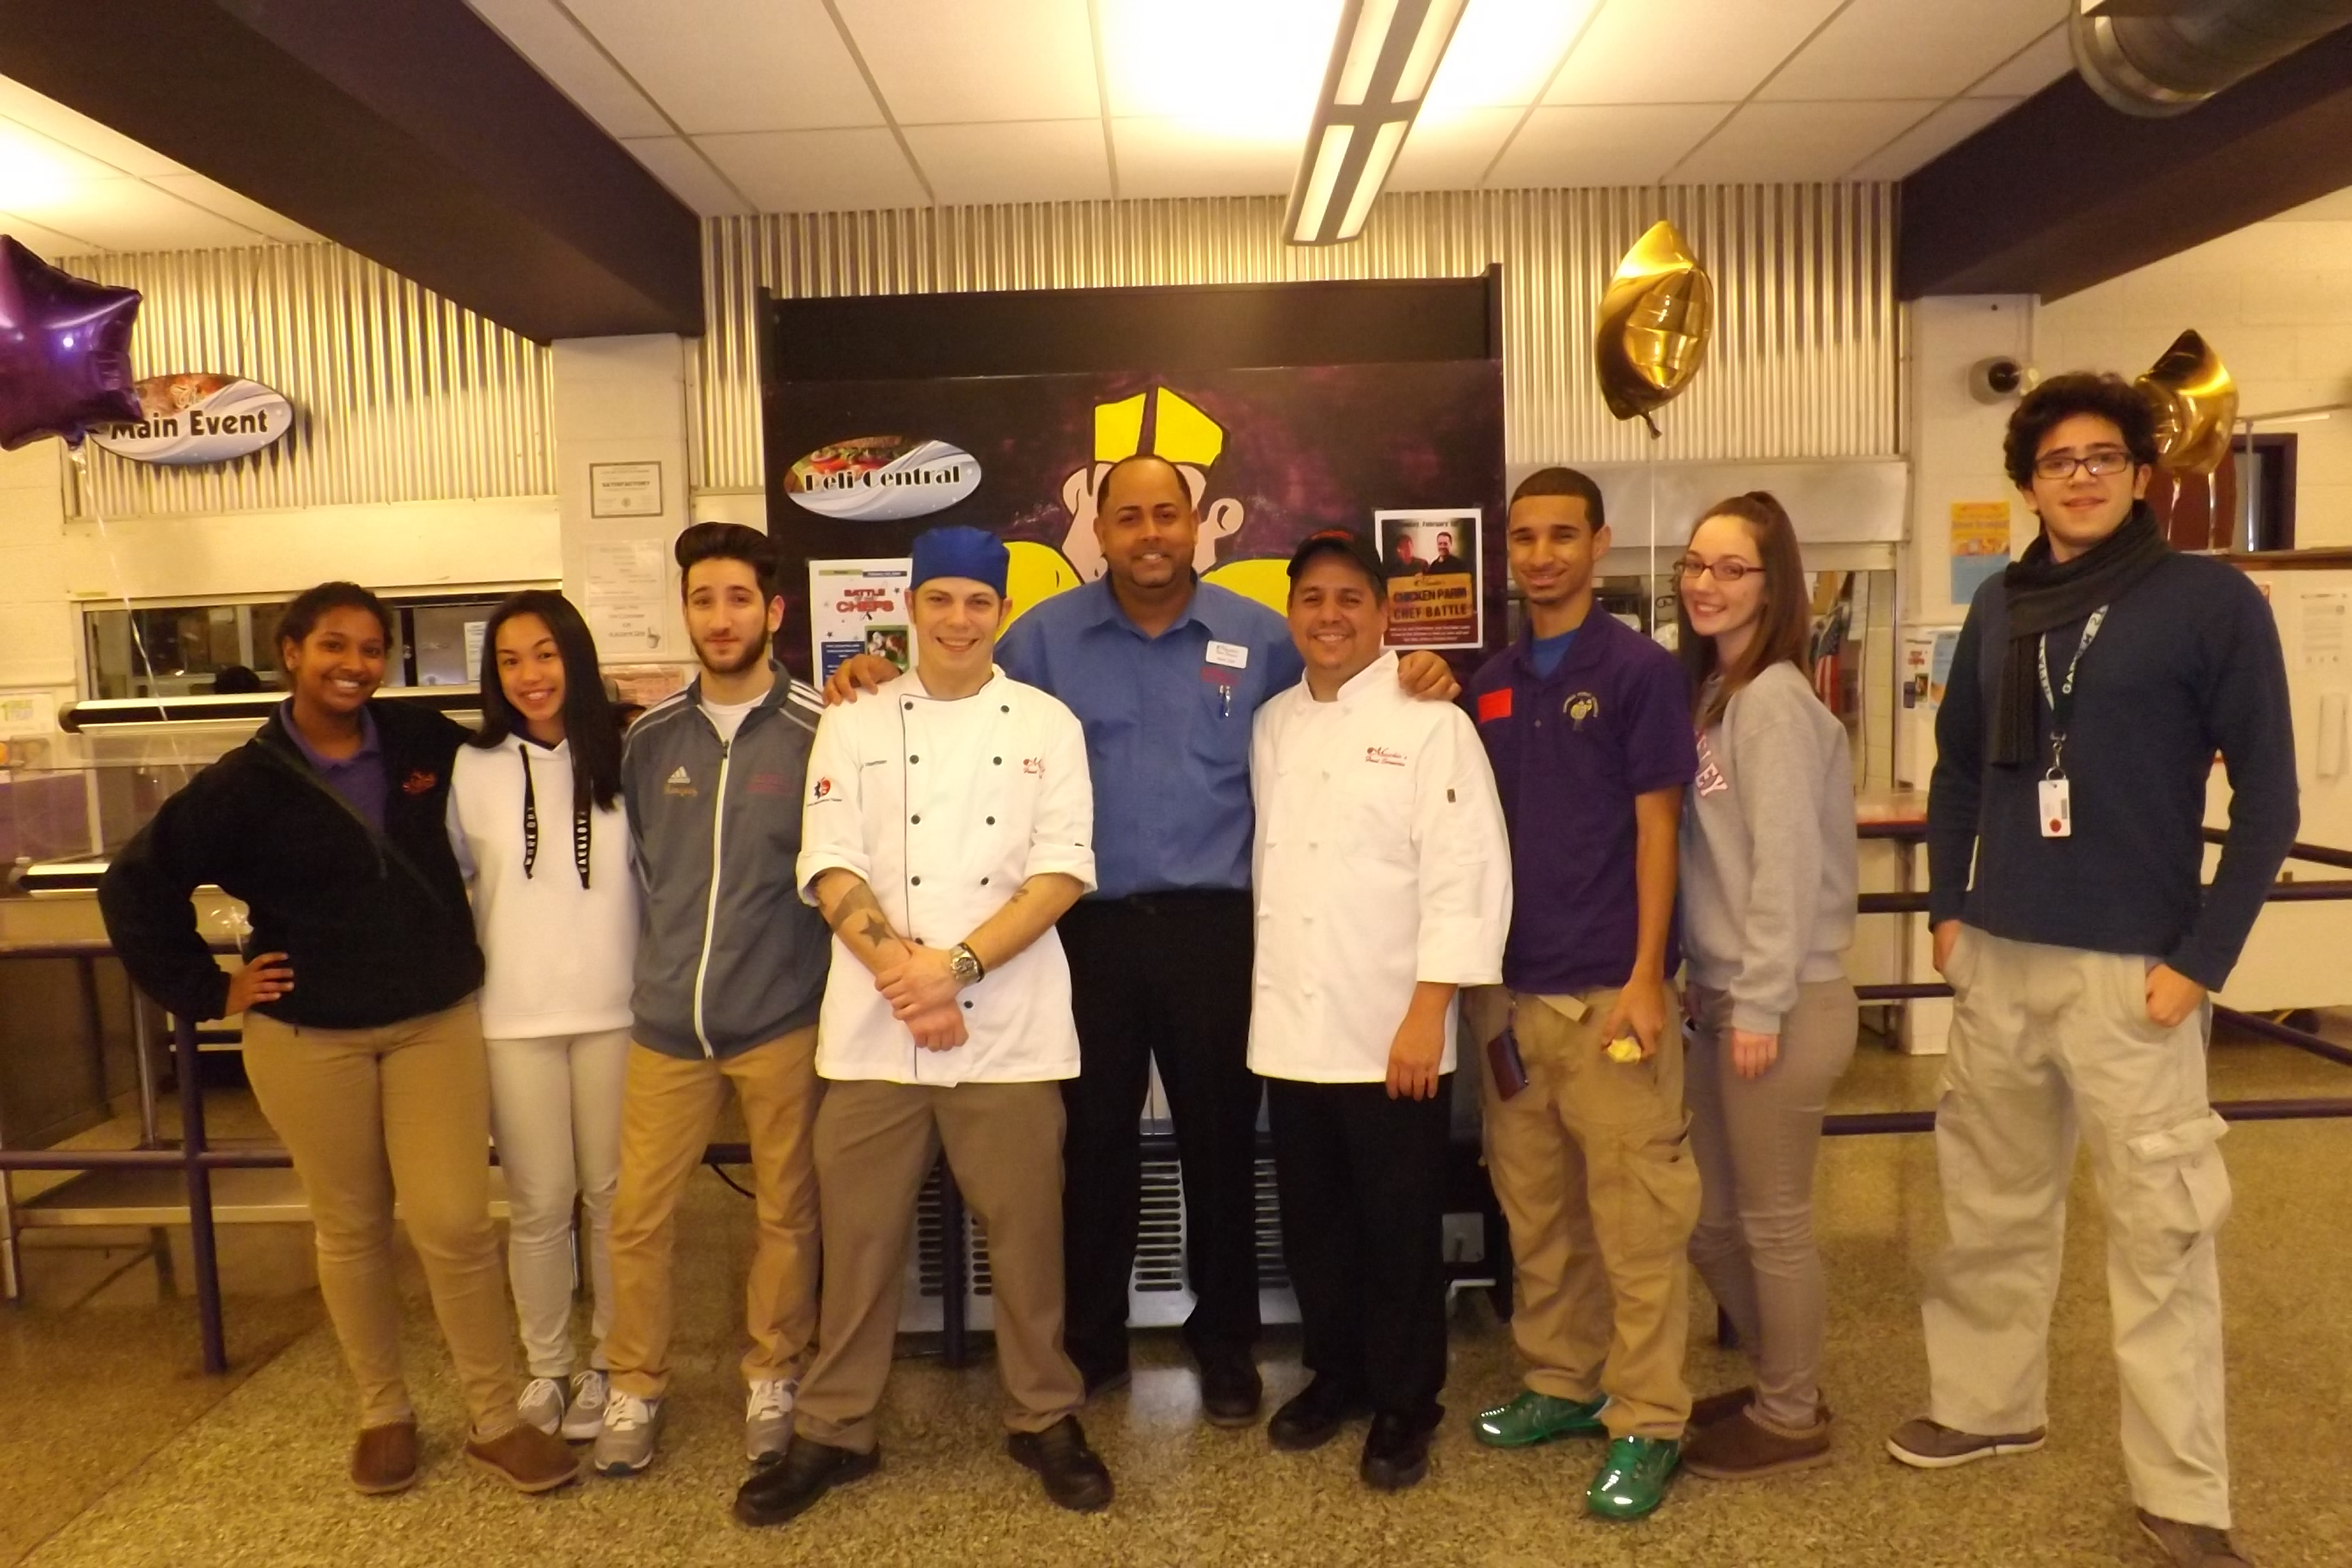 Corporate Chef Michael Herman, Area Supervisor Kevin Dyal, and Garfield Chef Steve Escobedo pictured with students from Garfield High School